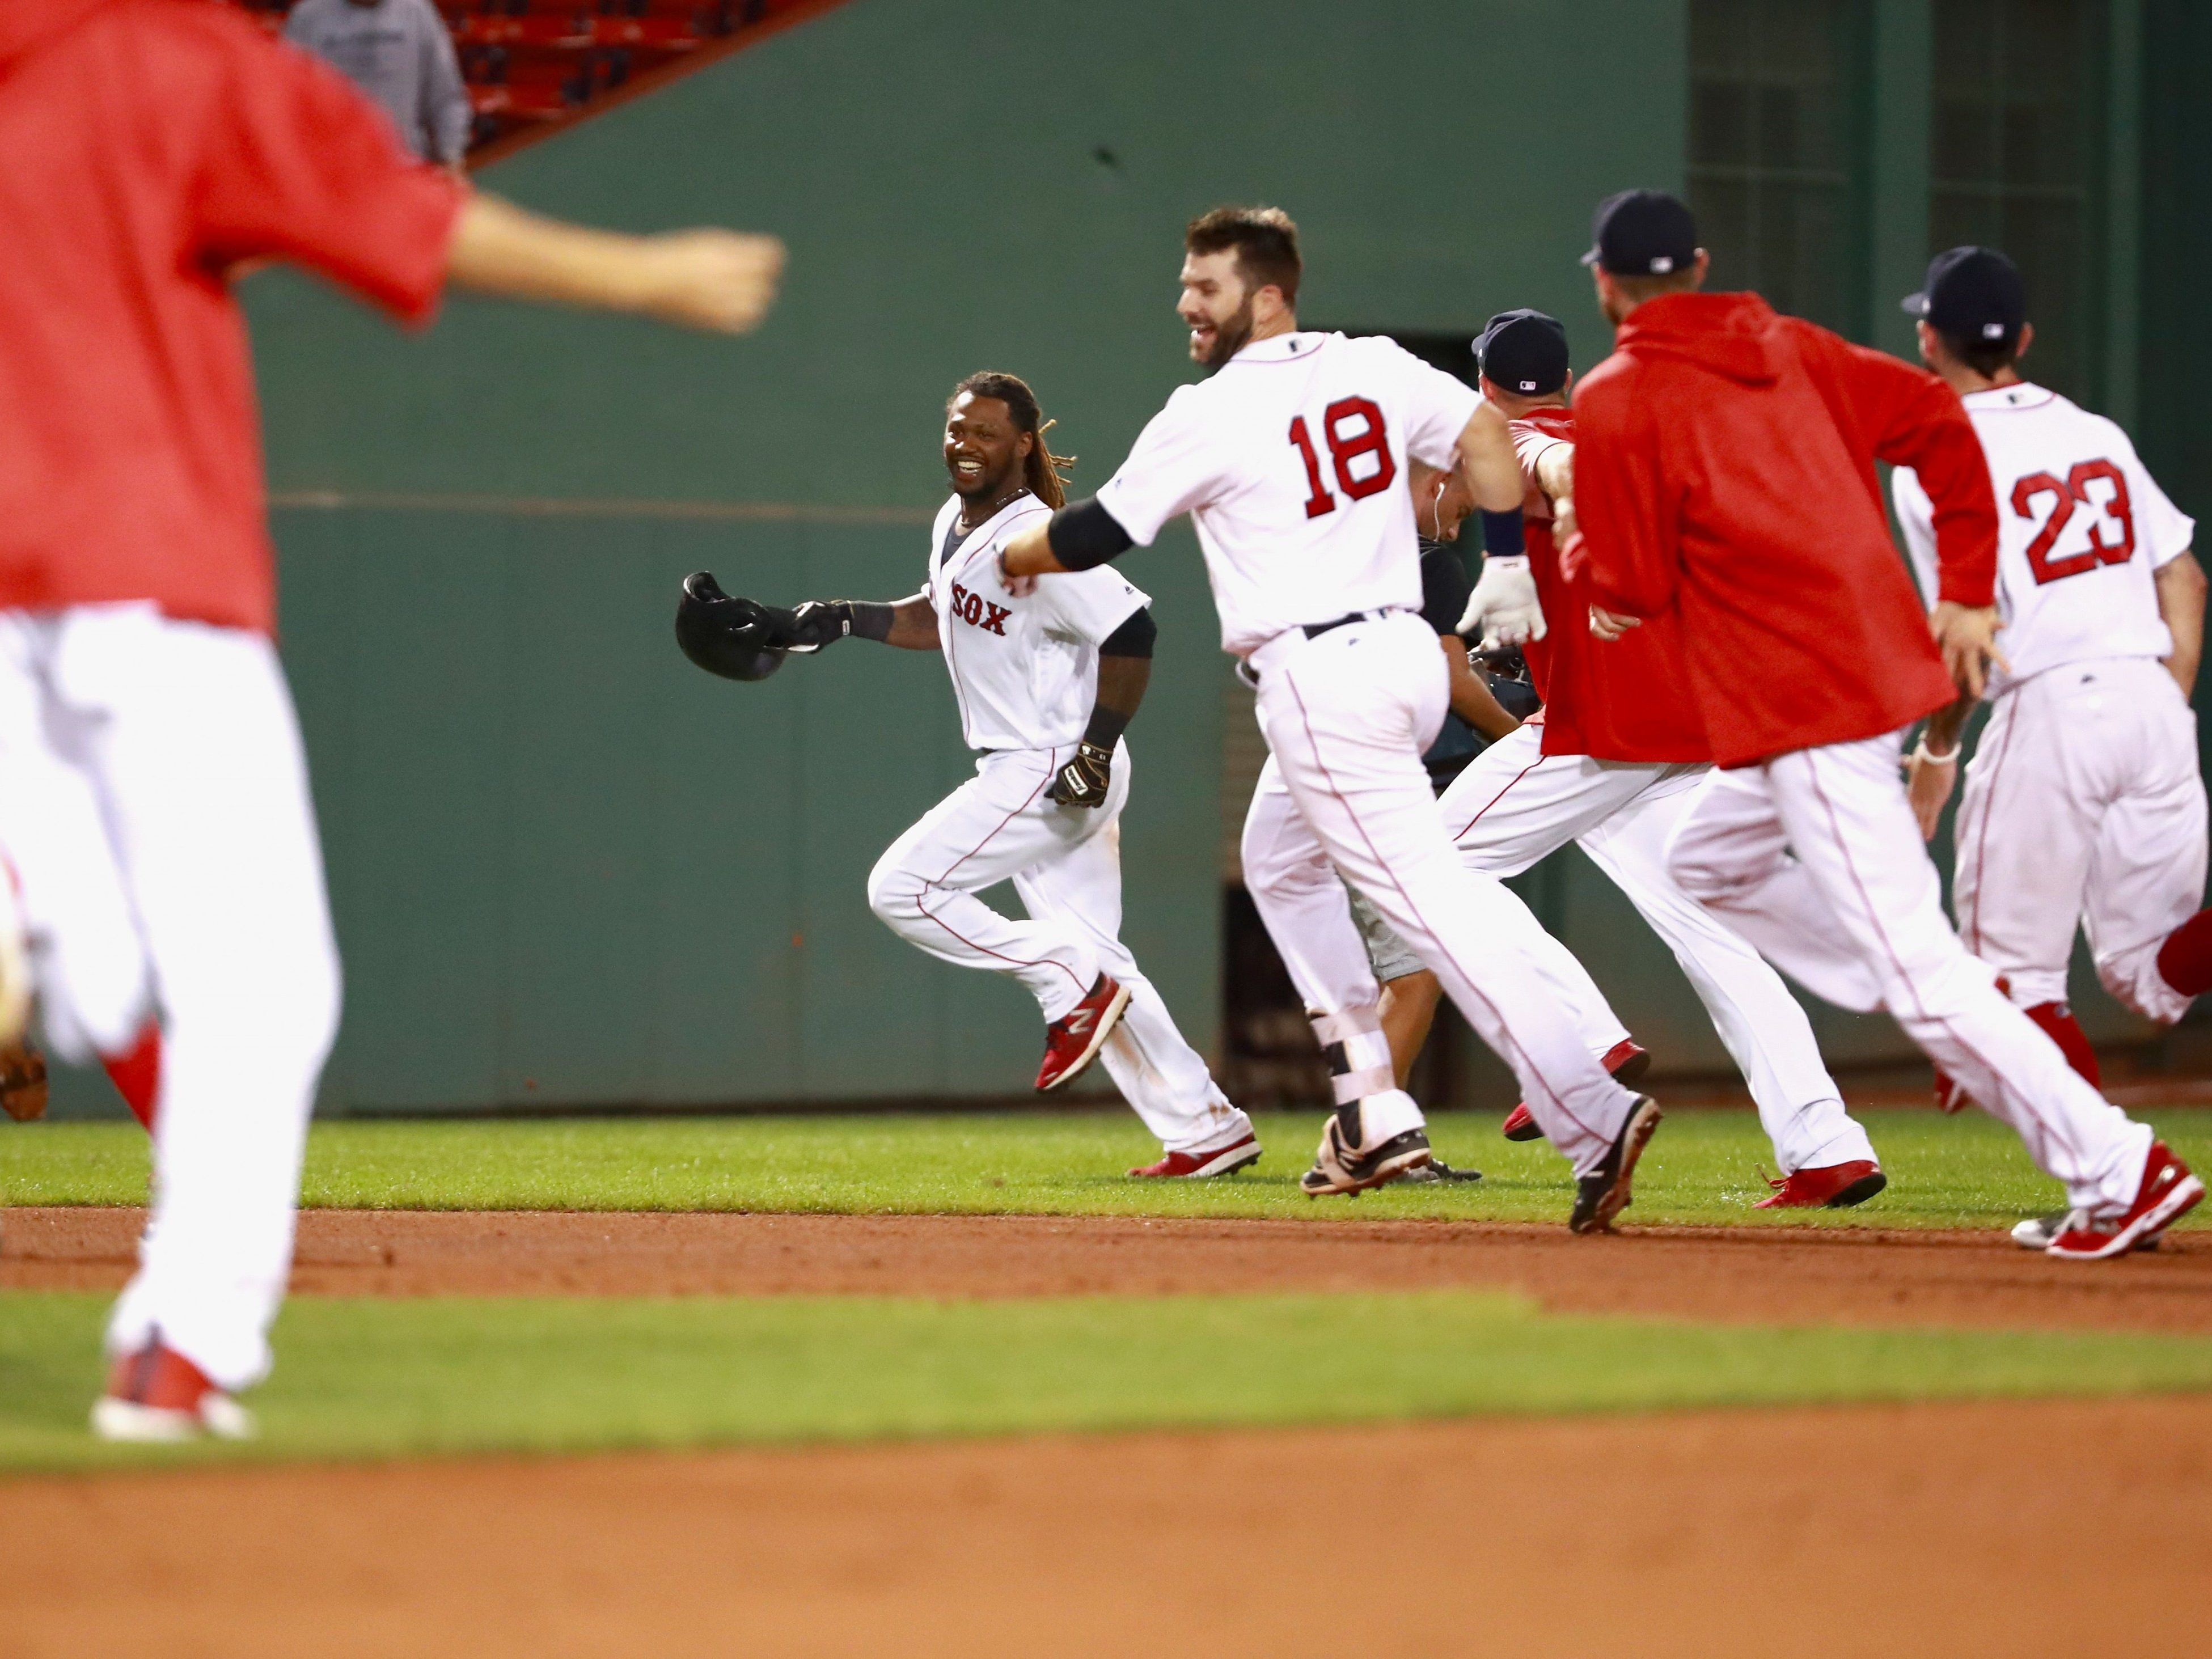 Die Boston Red Sox sollen mithilfe einer Smart-Watch betrogen haben.